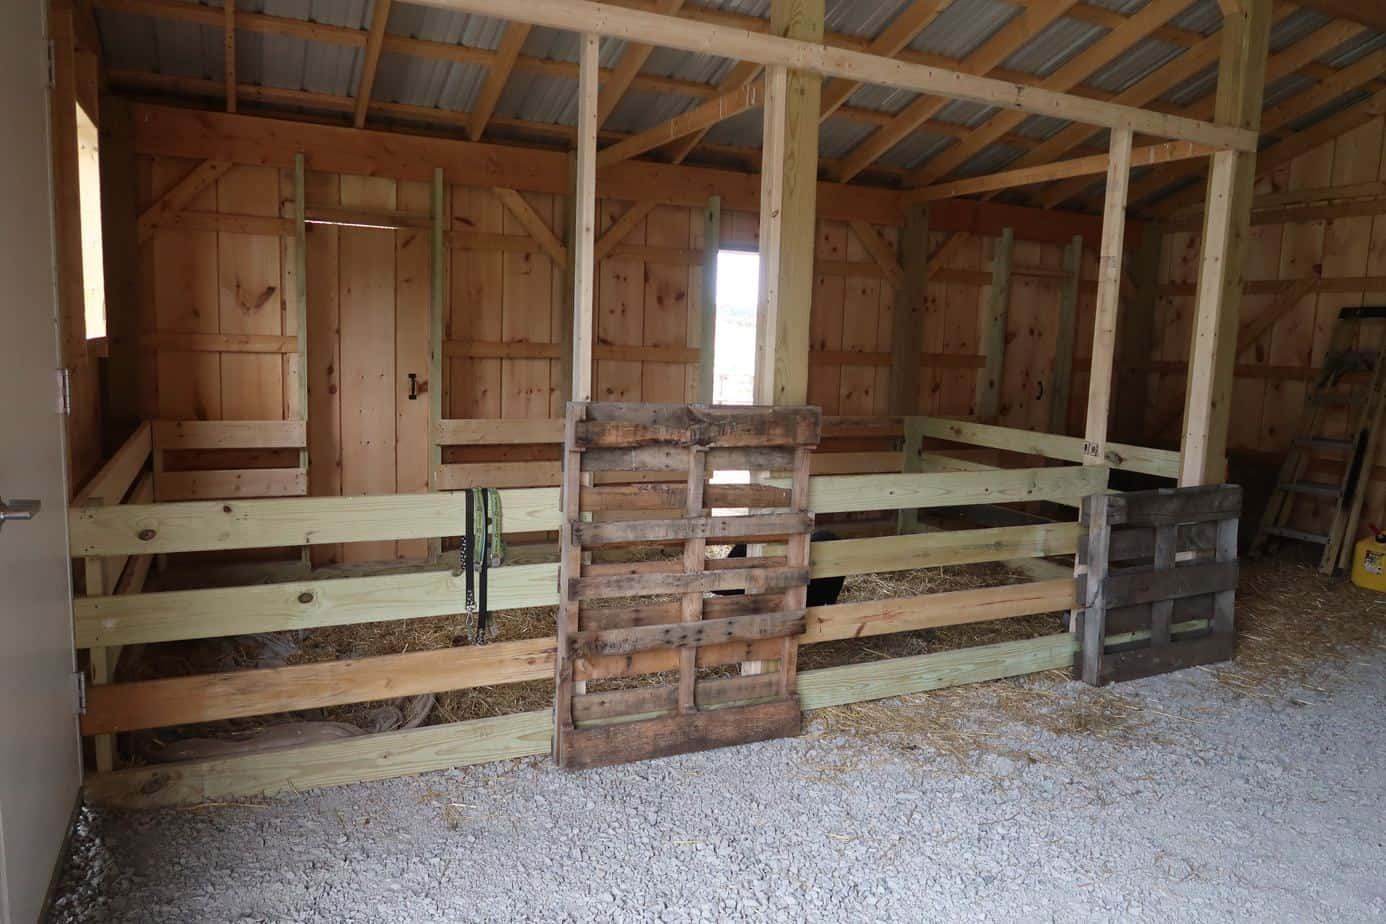 How to Build a Mini Pig Pen Using Pallets in Under 60 minutes